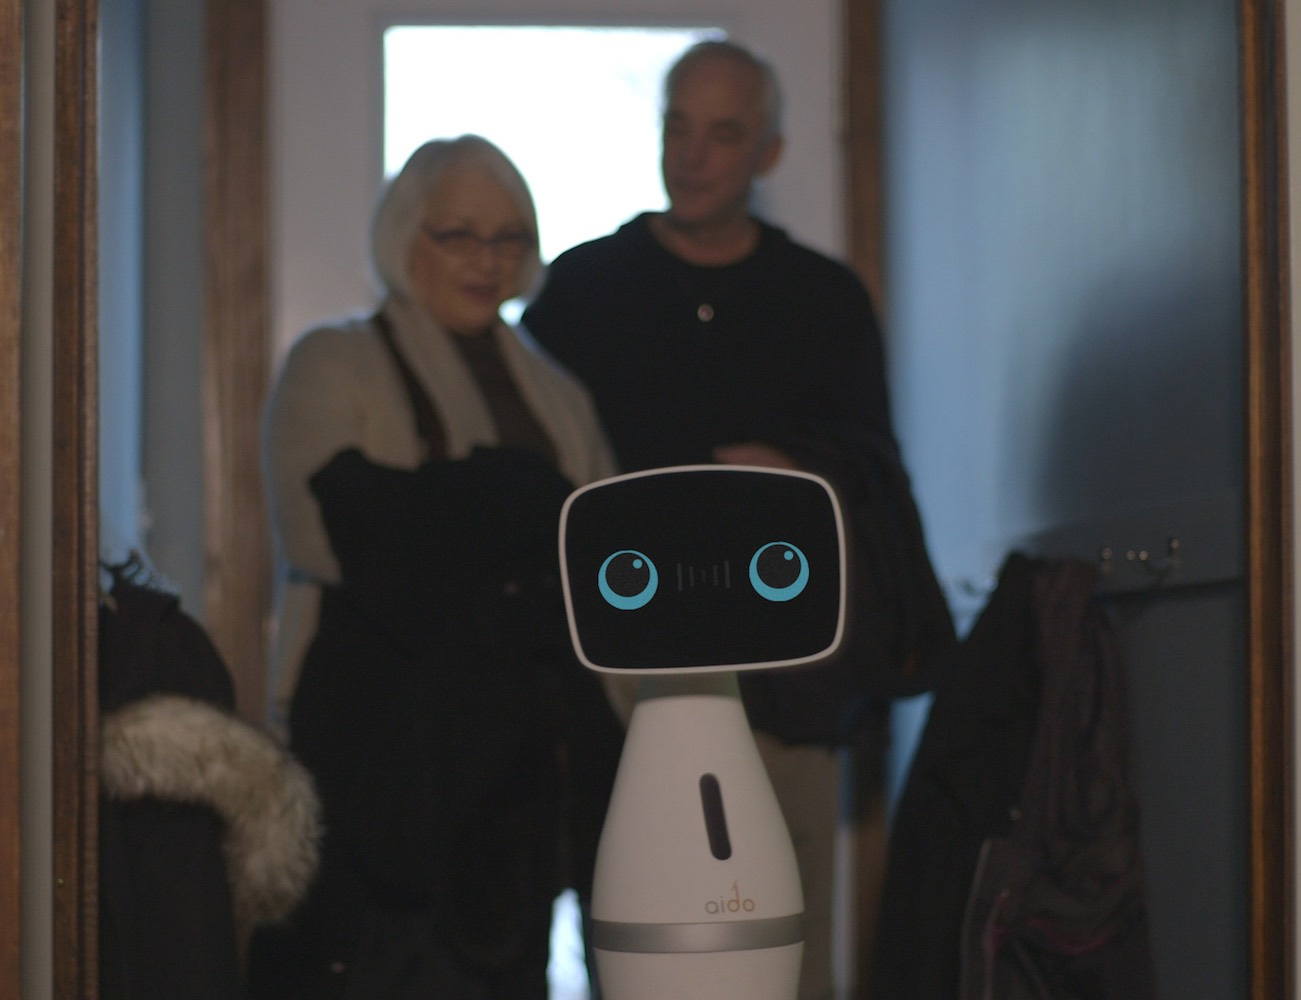 Aido – Next Gen Home Robot